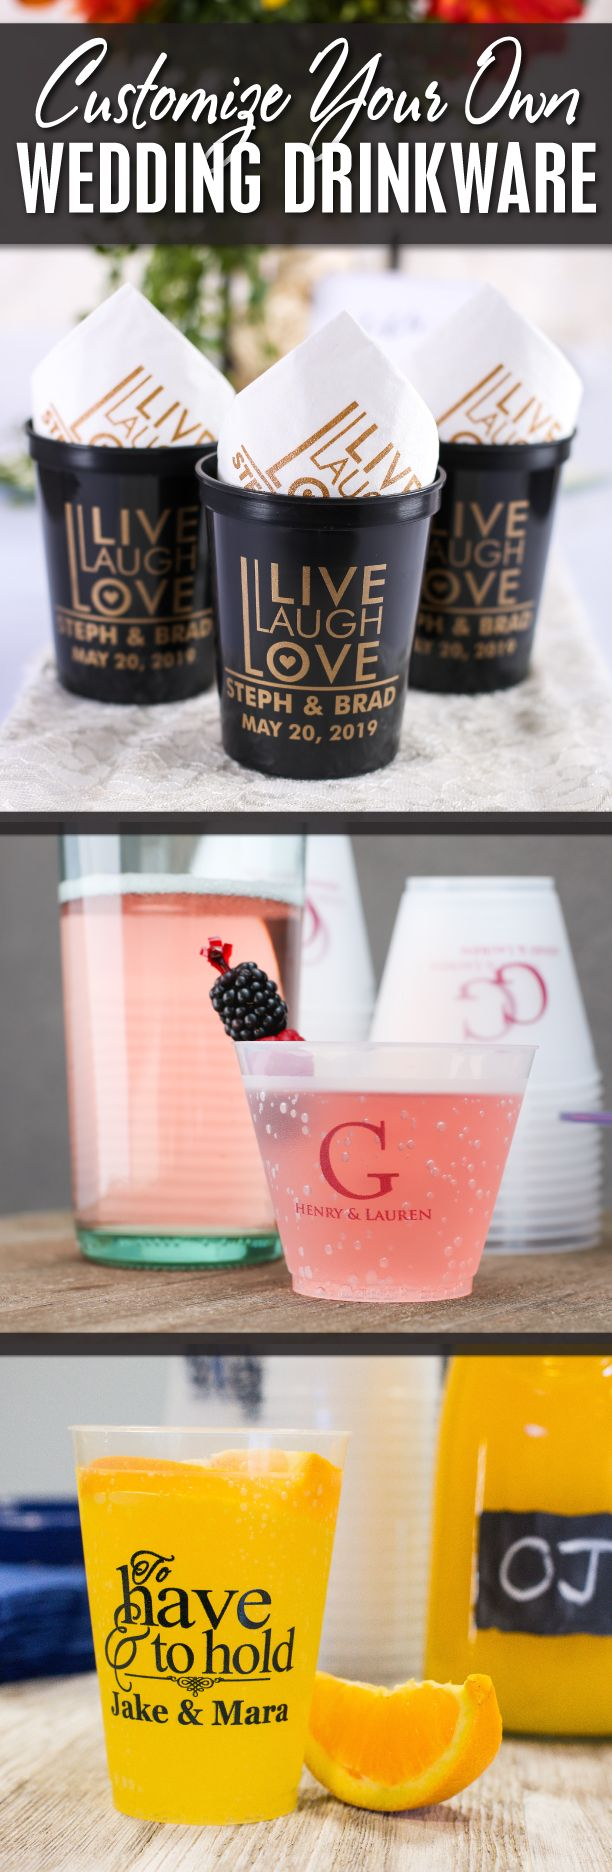 Customize your own #wedding drinkware with us! Wedding drinkware is the perfect functional favor to serve drinks at your wedding, and guests can take them home to use again and again in remembrance of your wedding! We offer a variety of styles, colors & sizes to compliment your wedding! Use coupon code PINNER10 and receive 10% off your drinkware order! Sale applies to piece price only, not valid with other coupon codes and expires 12.31.16!